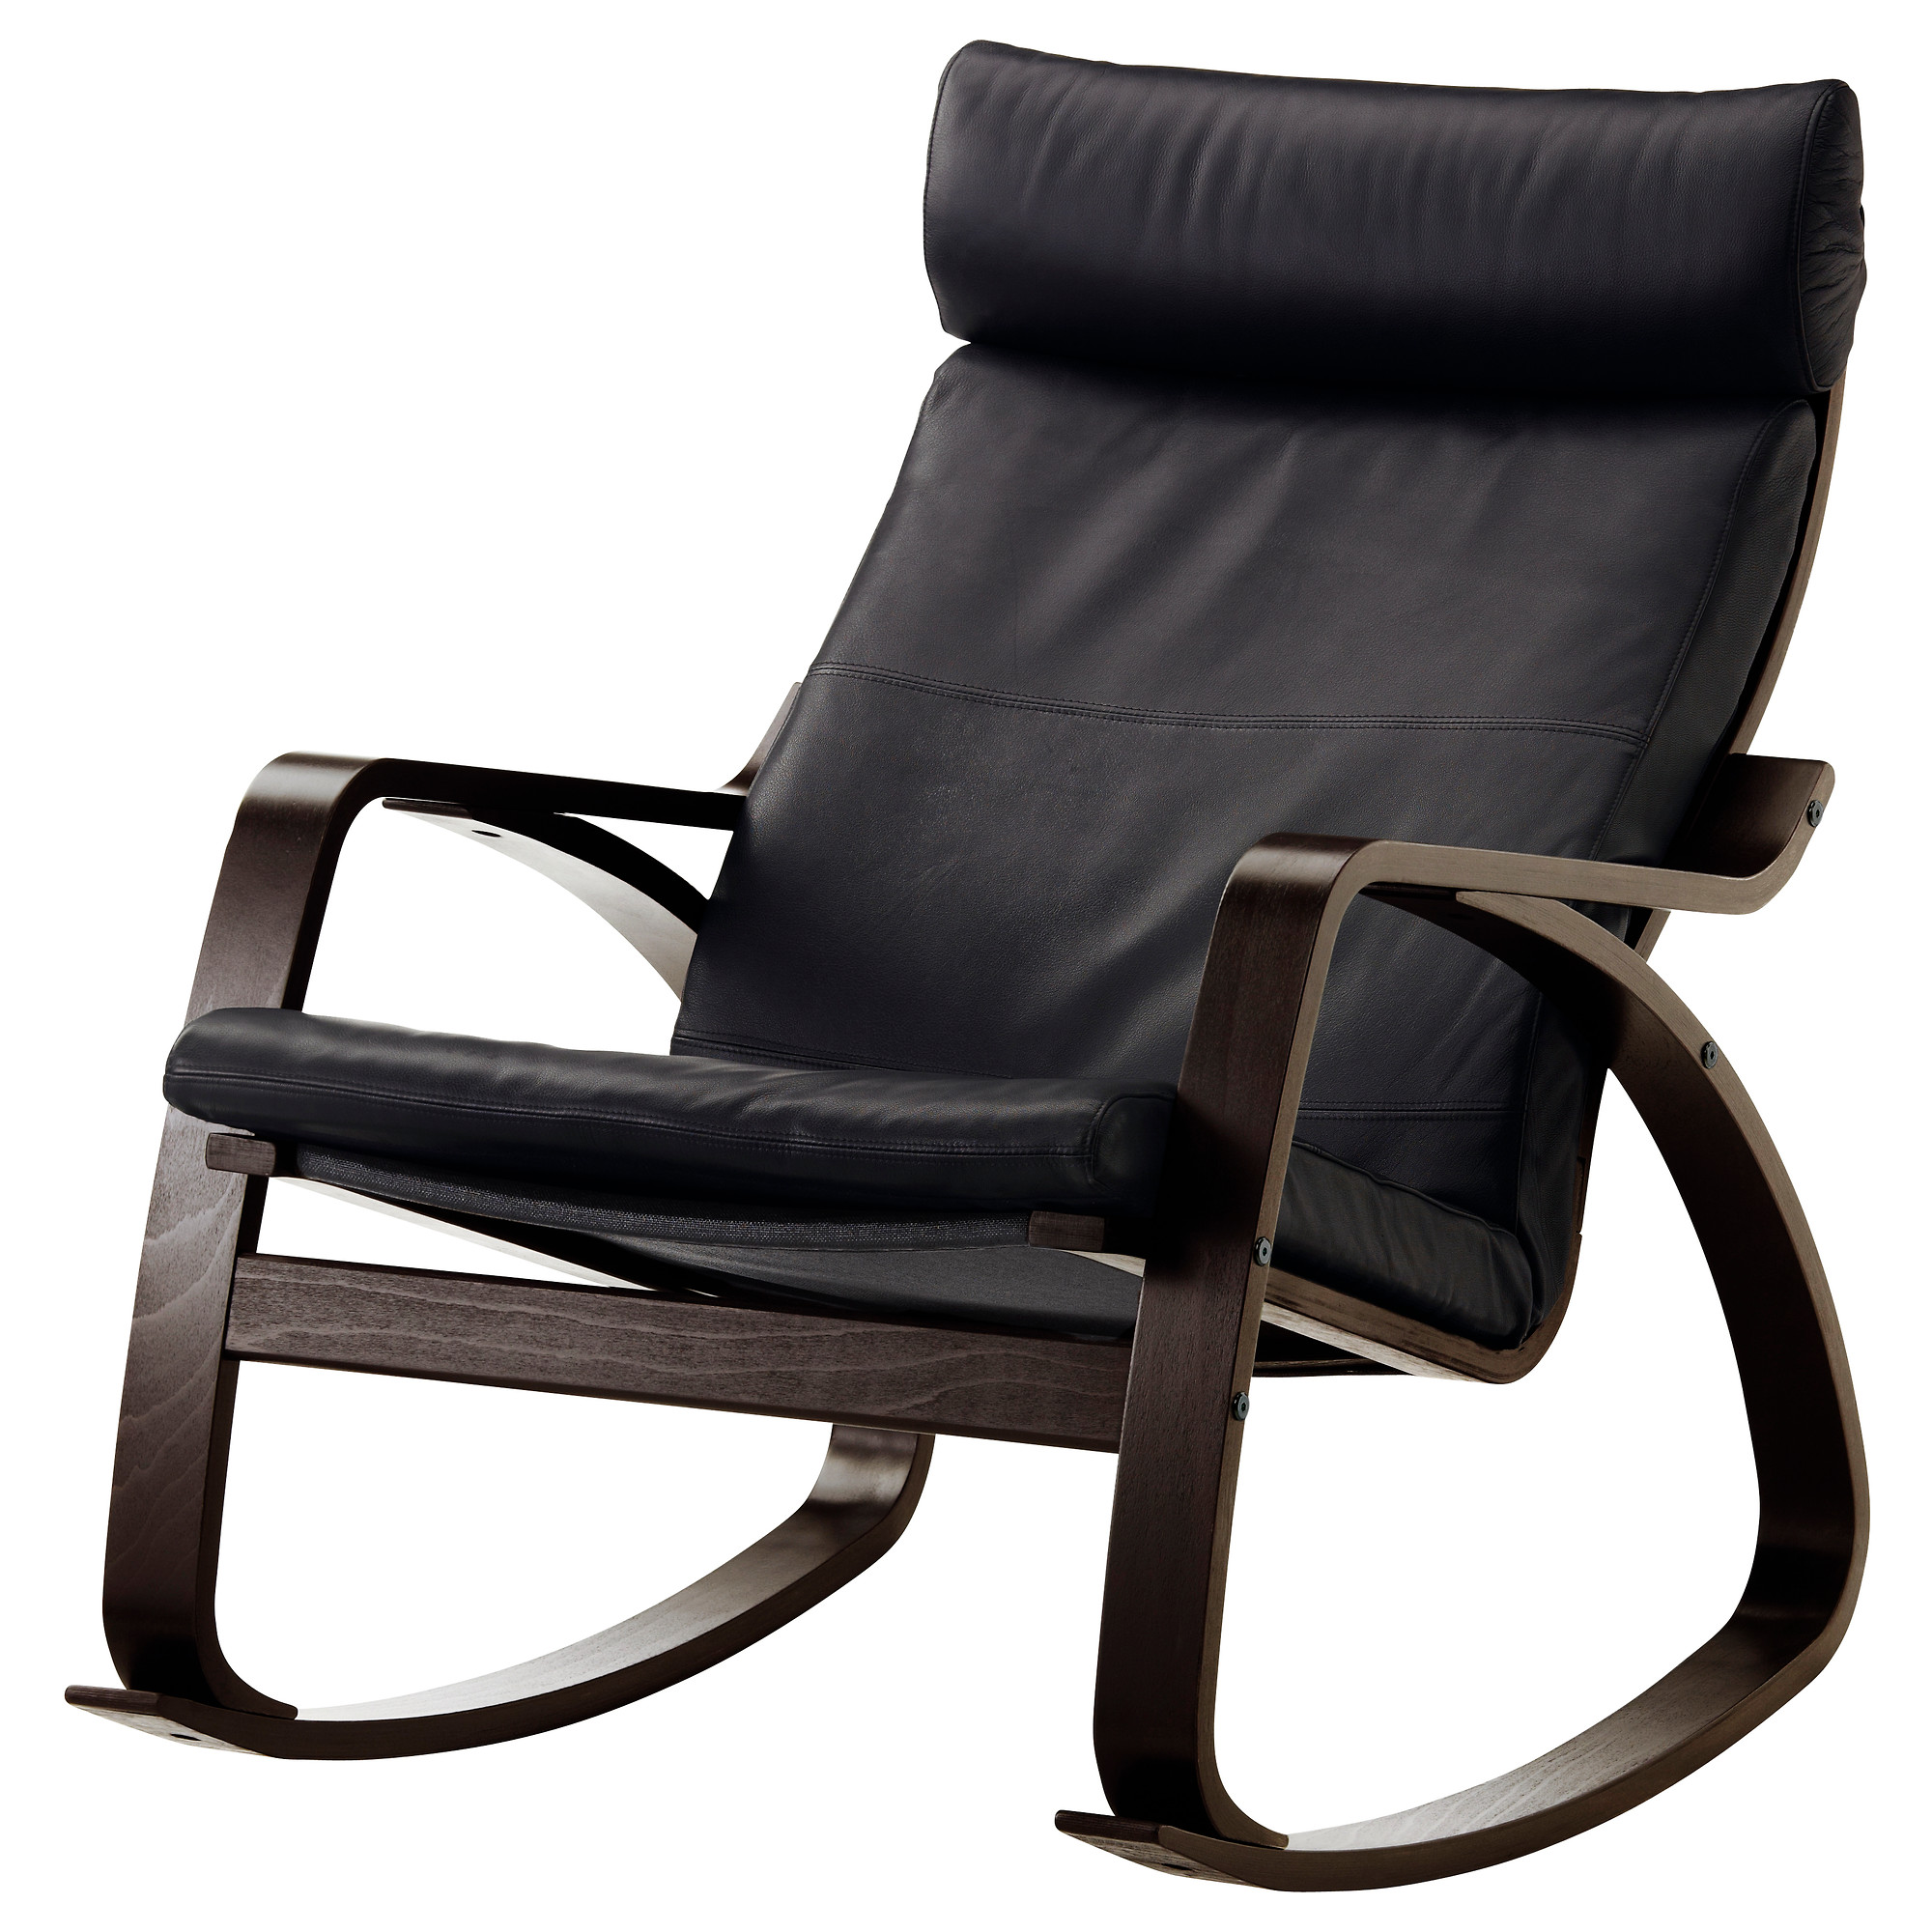 PO NG Rocking chair   Glose dark brown   IKEA. High Back Dining Chairs Ikea. Home Design Ideas